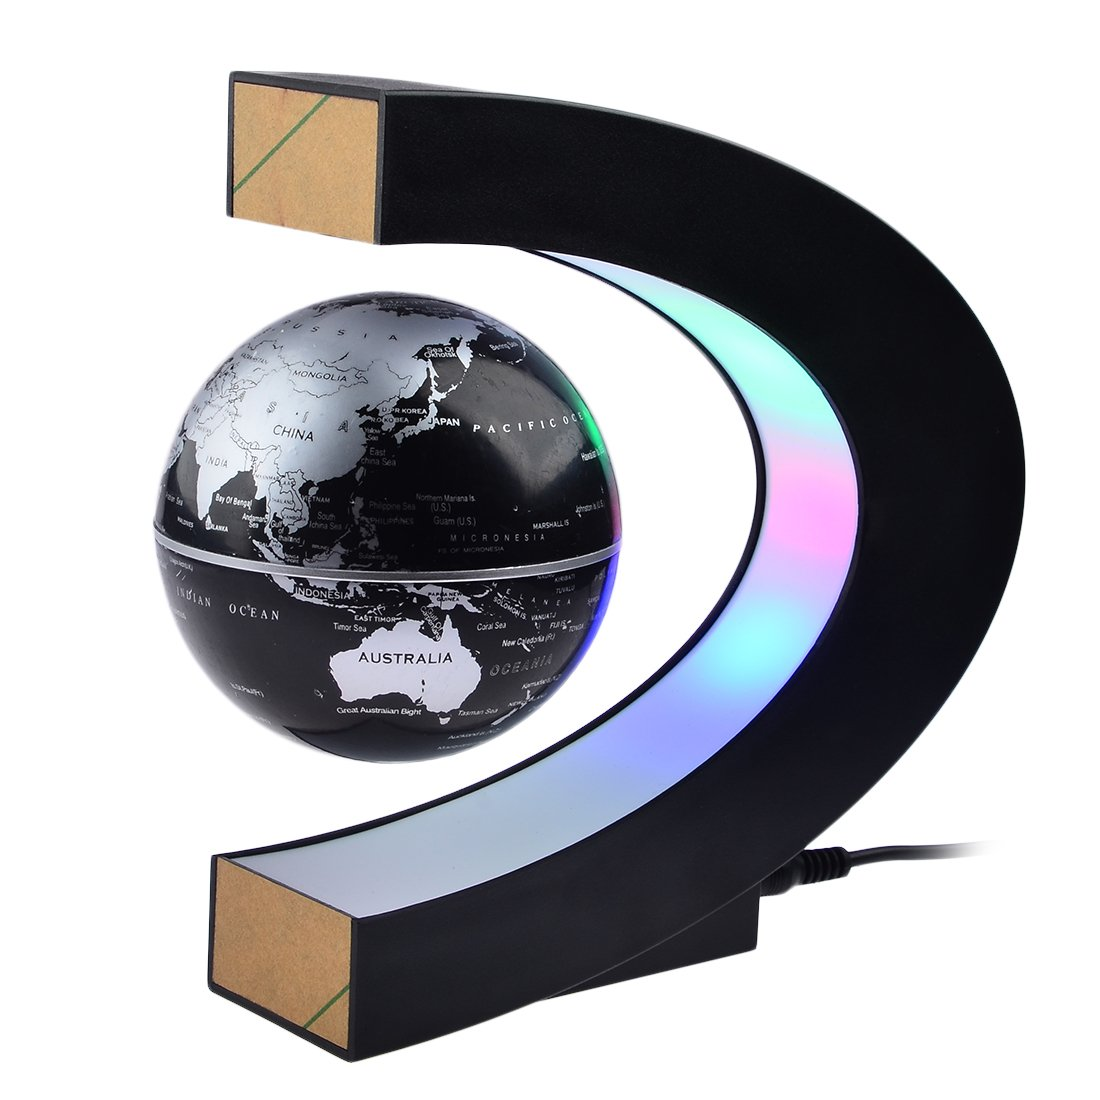 Magnetic Levitation,Petforu High Rotation C Shape Magnetic Suspension Maglev Levitation Globe with LED Lights for Learning Education Teaching Demo Home Office Desk Decoration(US Plug) - Black